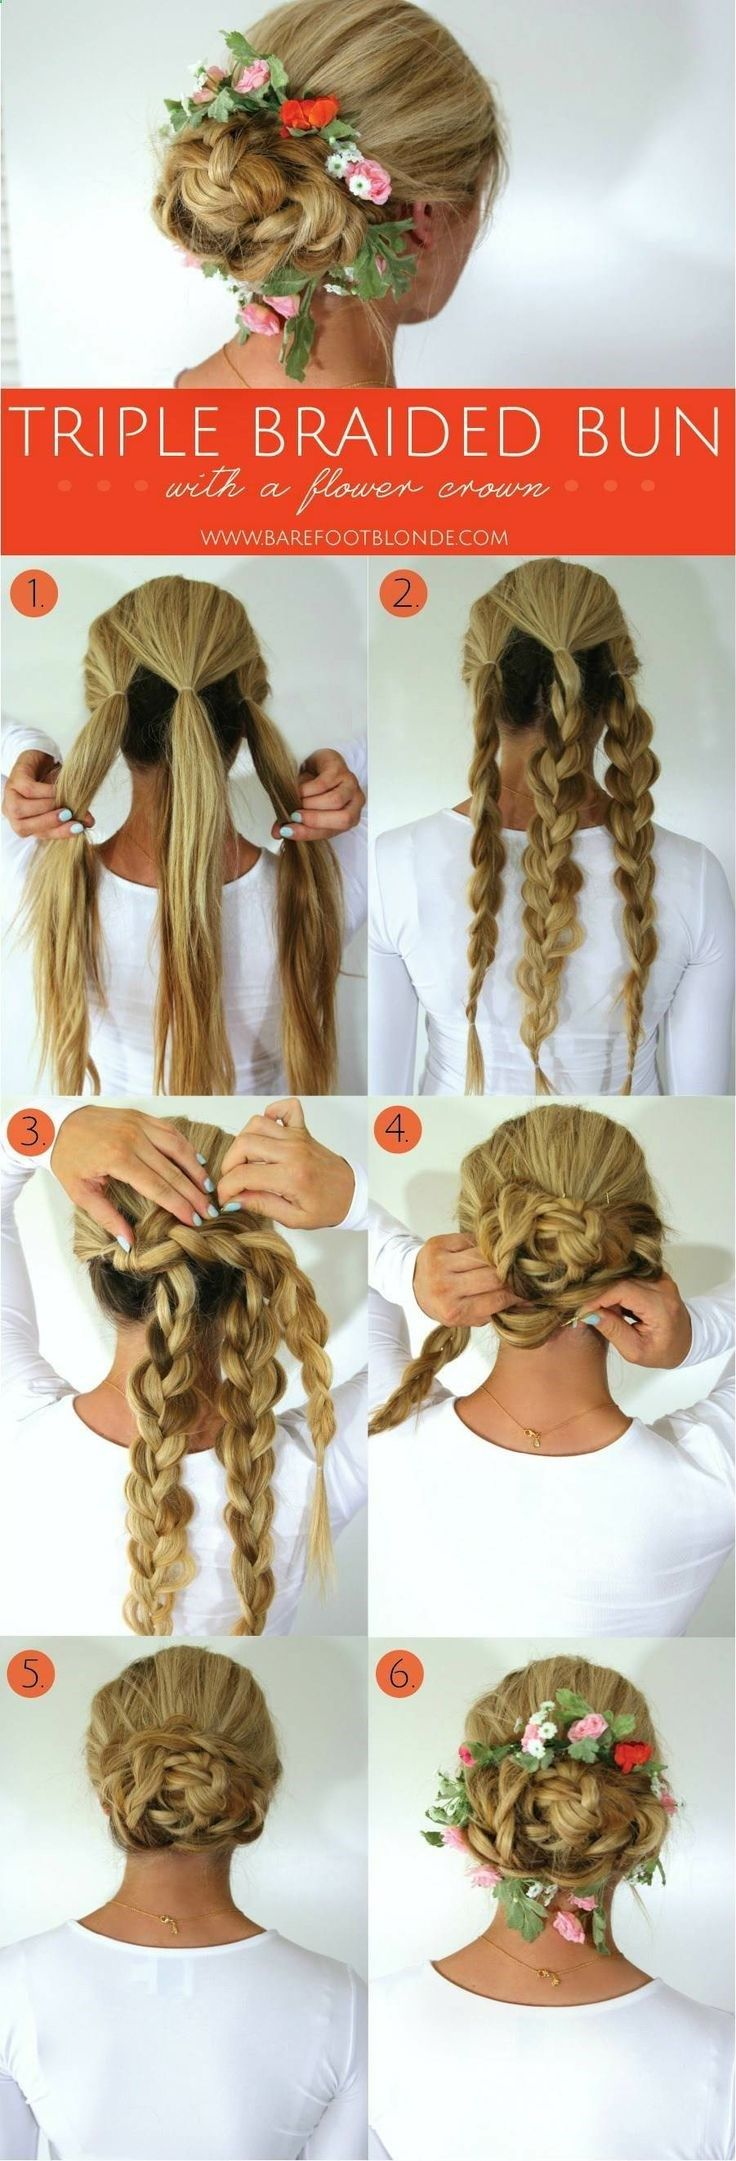 Triple Braided Bun With Flower Crown - Barefoot Blonde